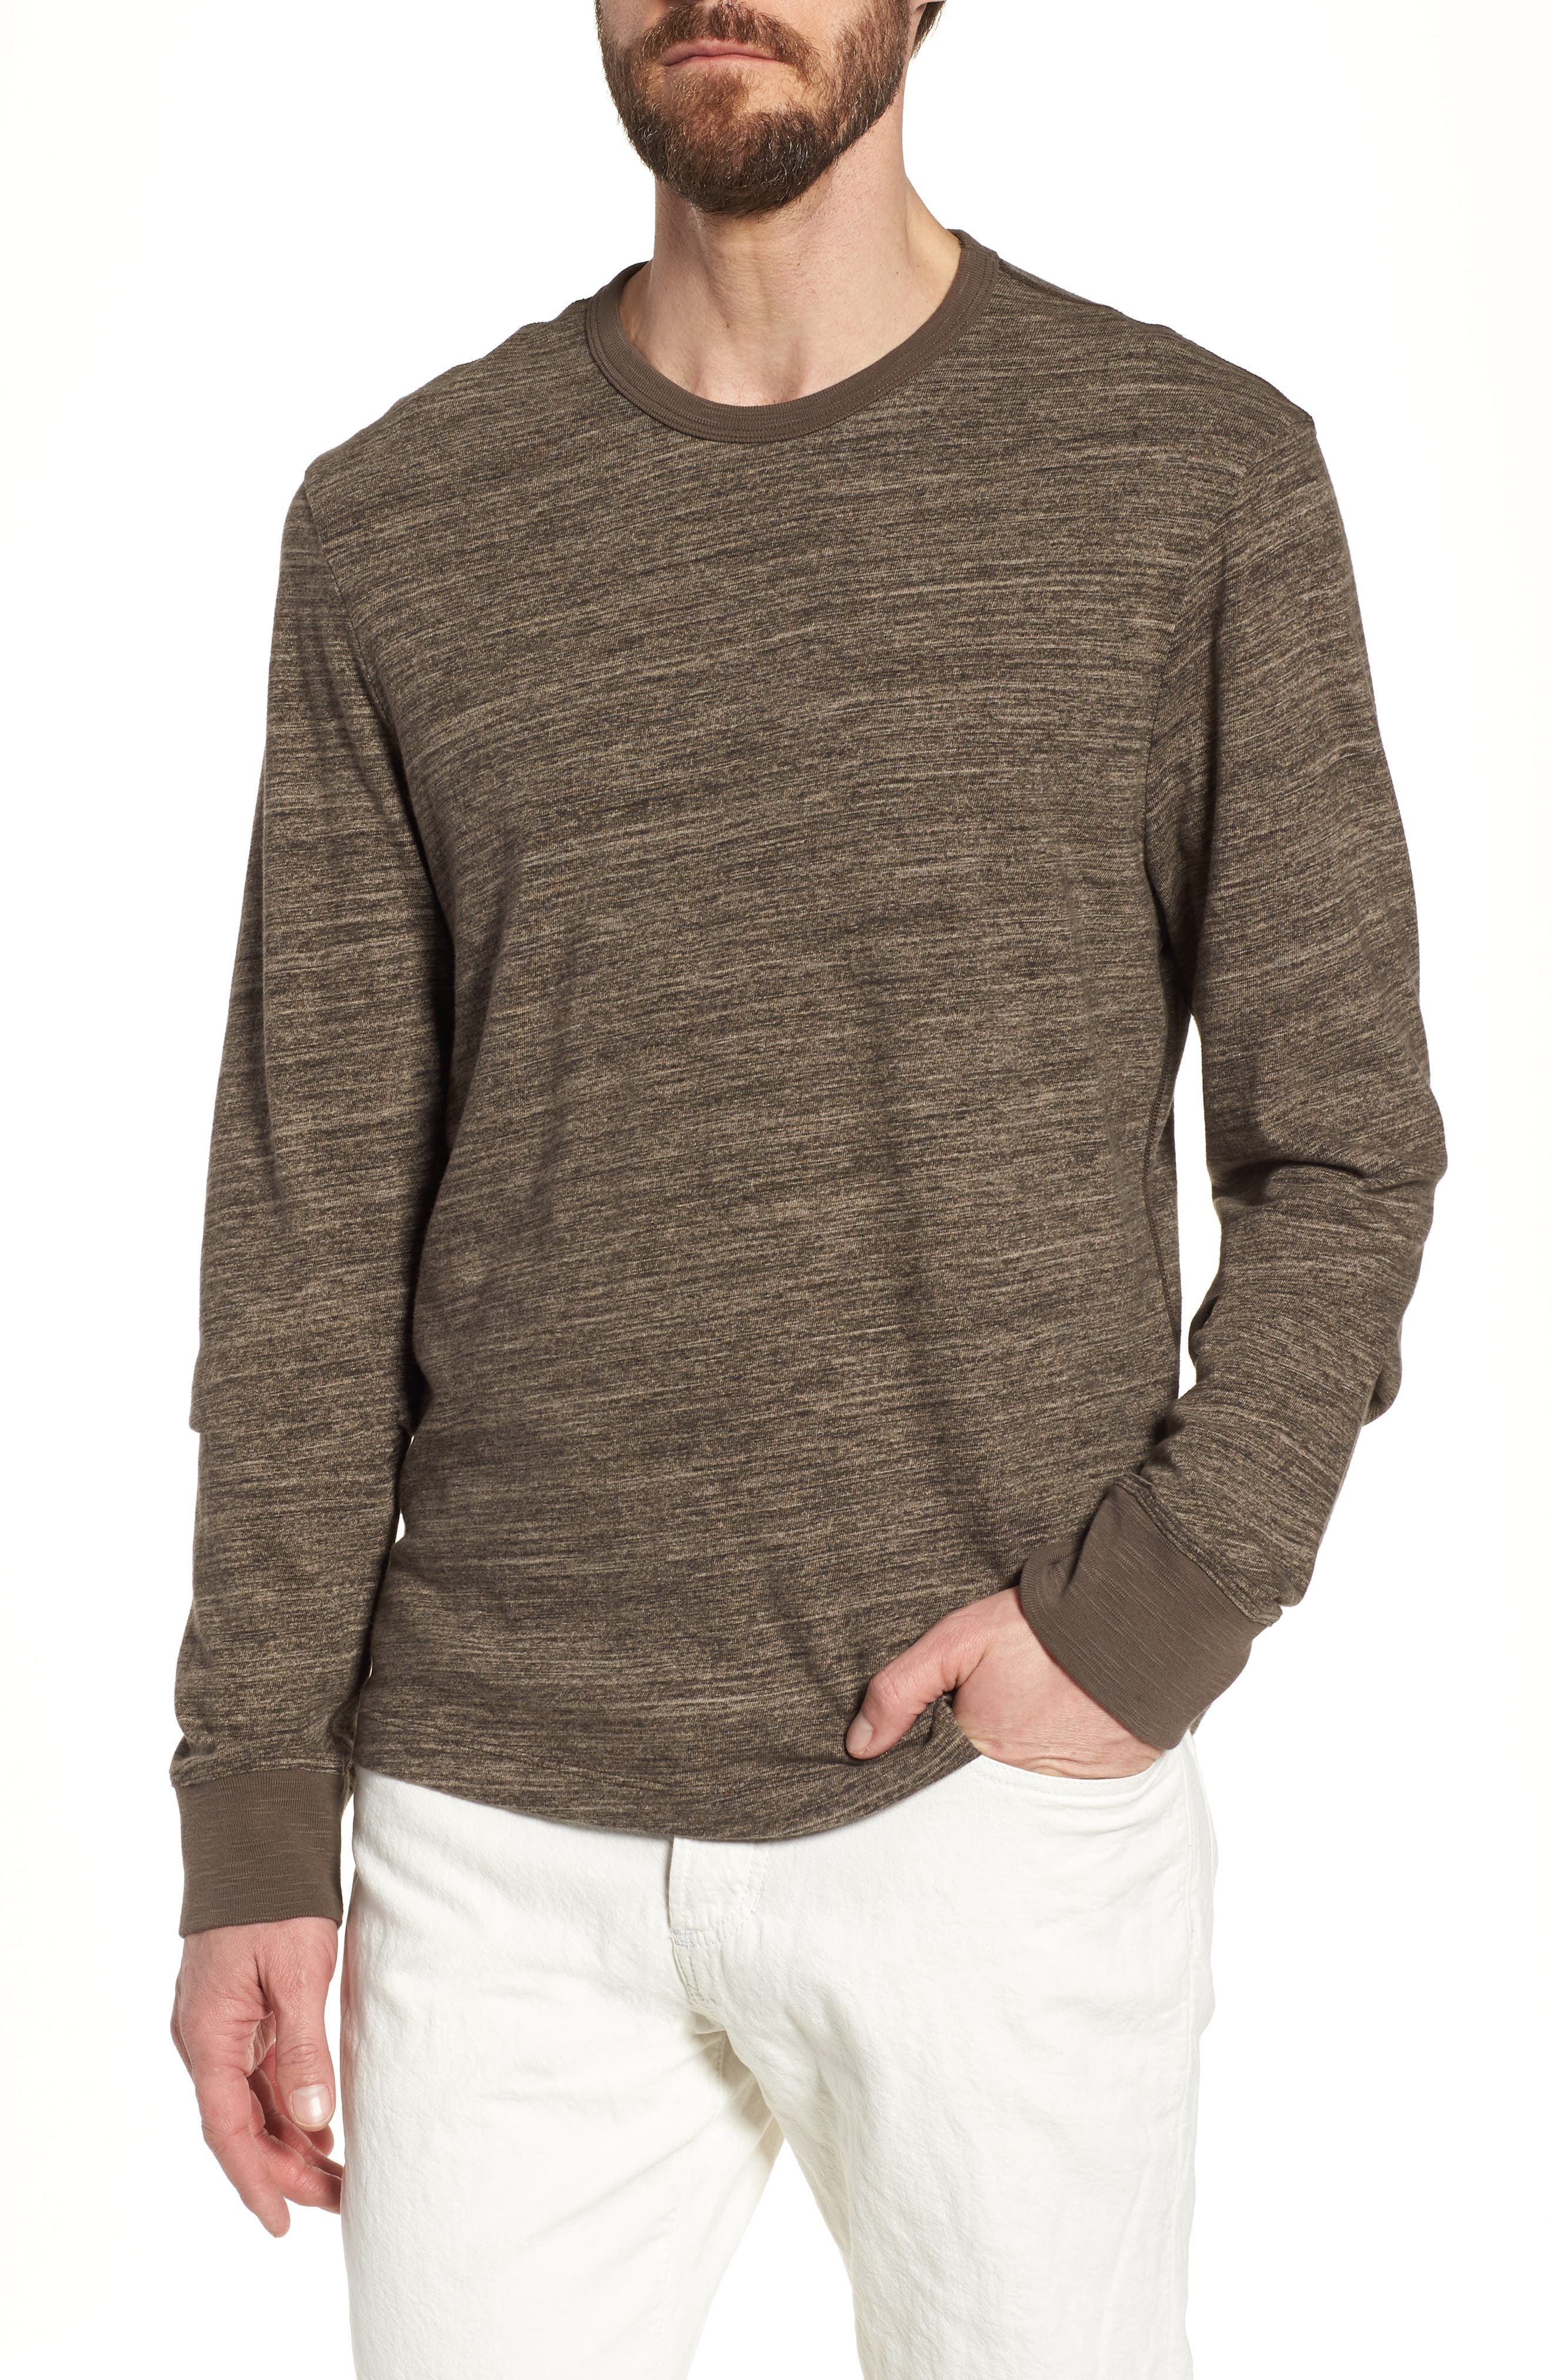 Brown crew-neck t-shirt James Perse Explore Sale Online Clean And Classic 2018 New Online TnPwFZY